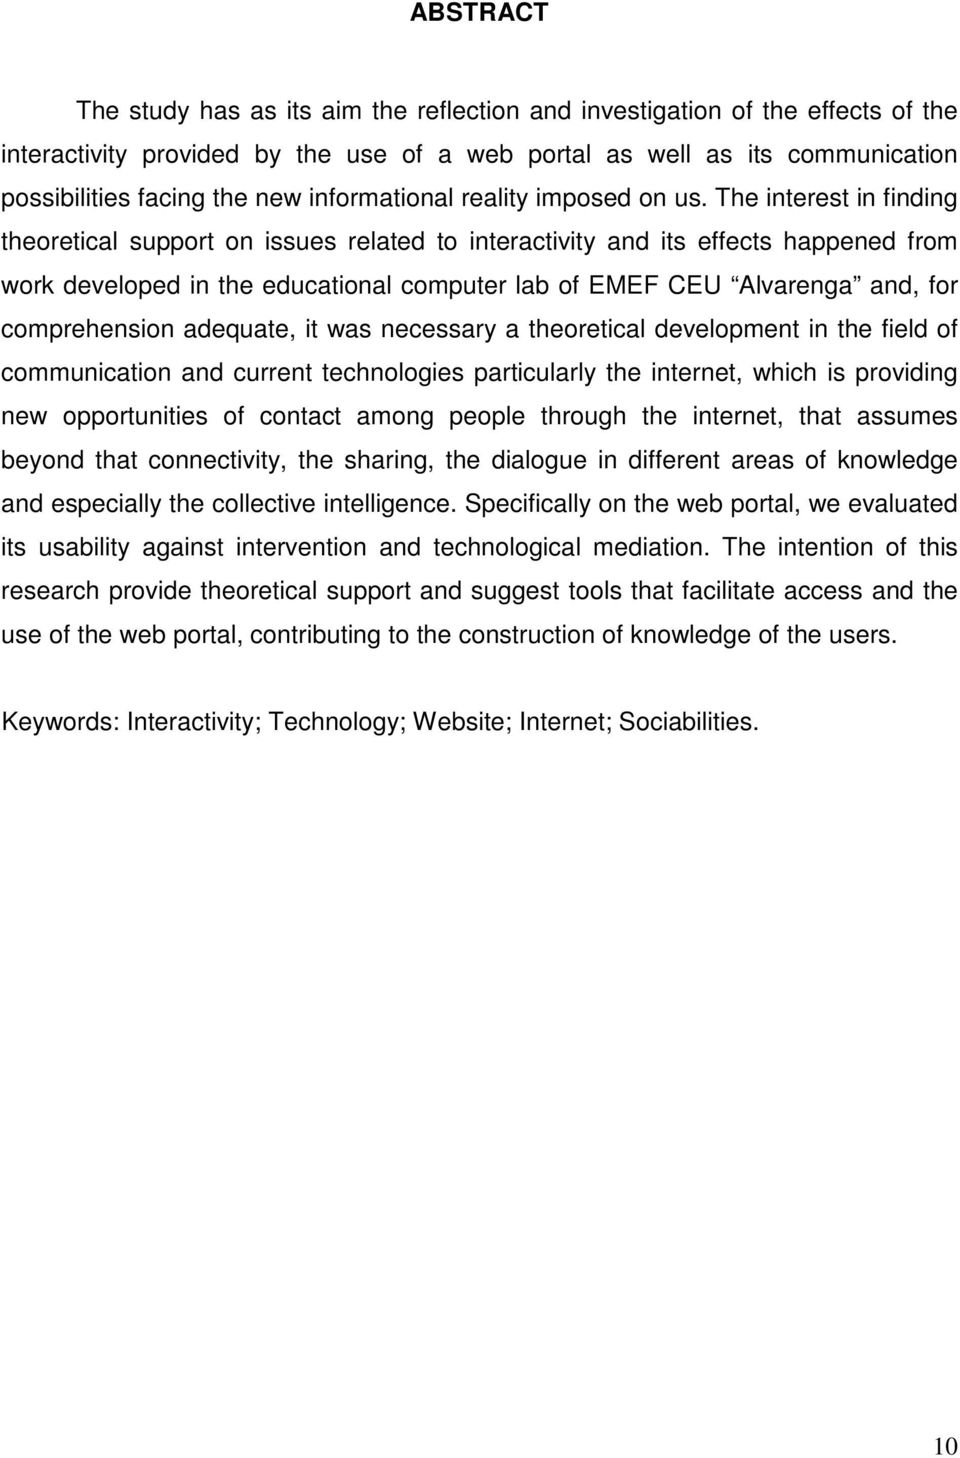 The interest in finding theoretical support on issues related to interactivity and its effects happened from work developed in the educational computer lab of EMEF CEU Alvarenga and, for